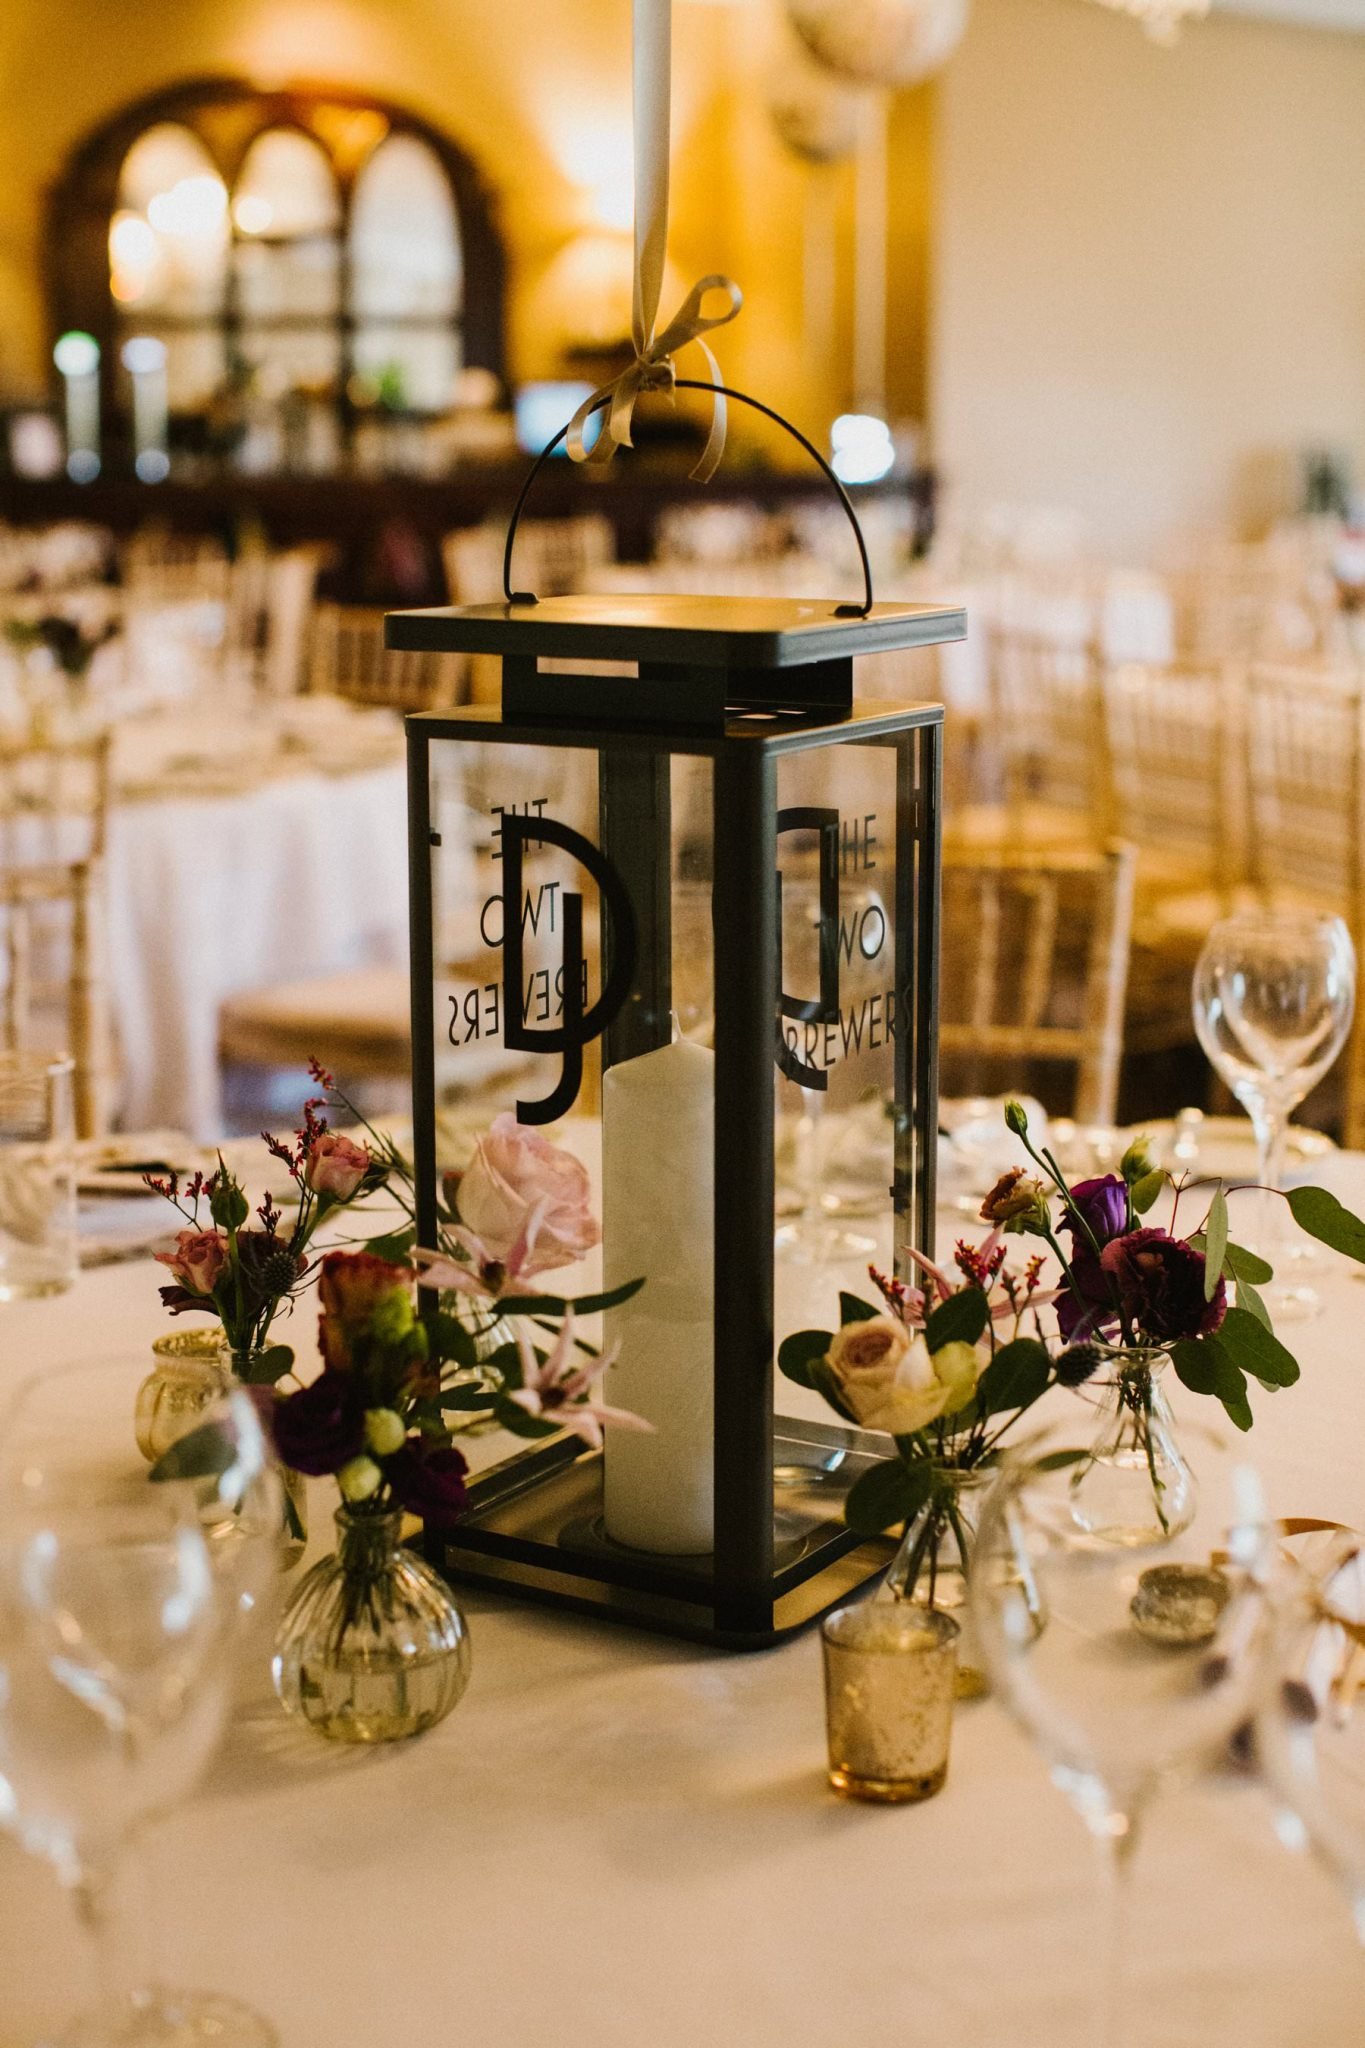 decal initials on lantern for wedding table centre piece in bellinter house navan